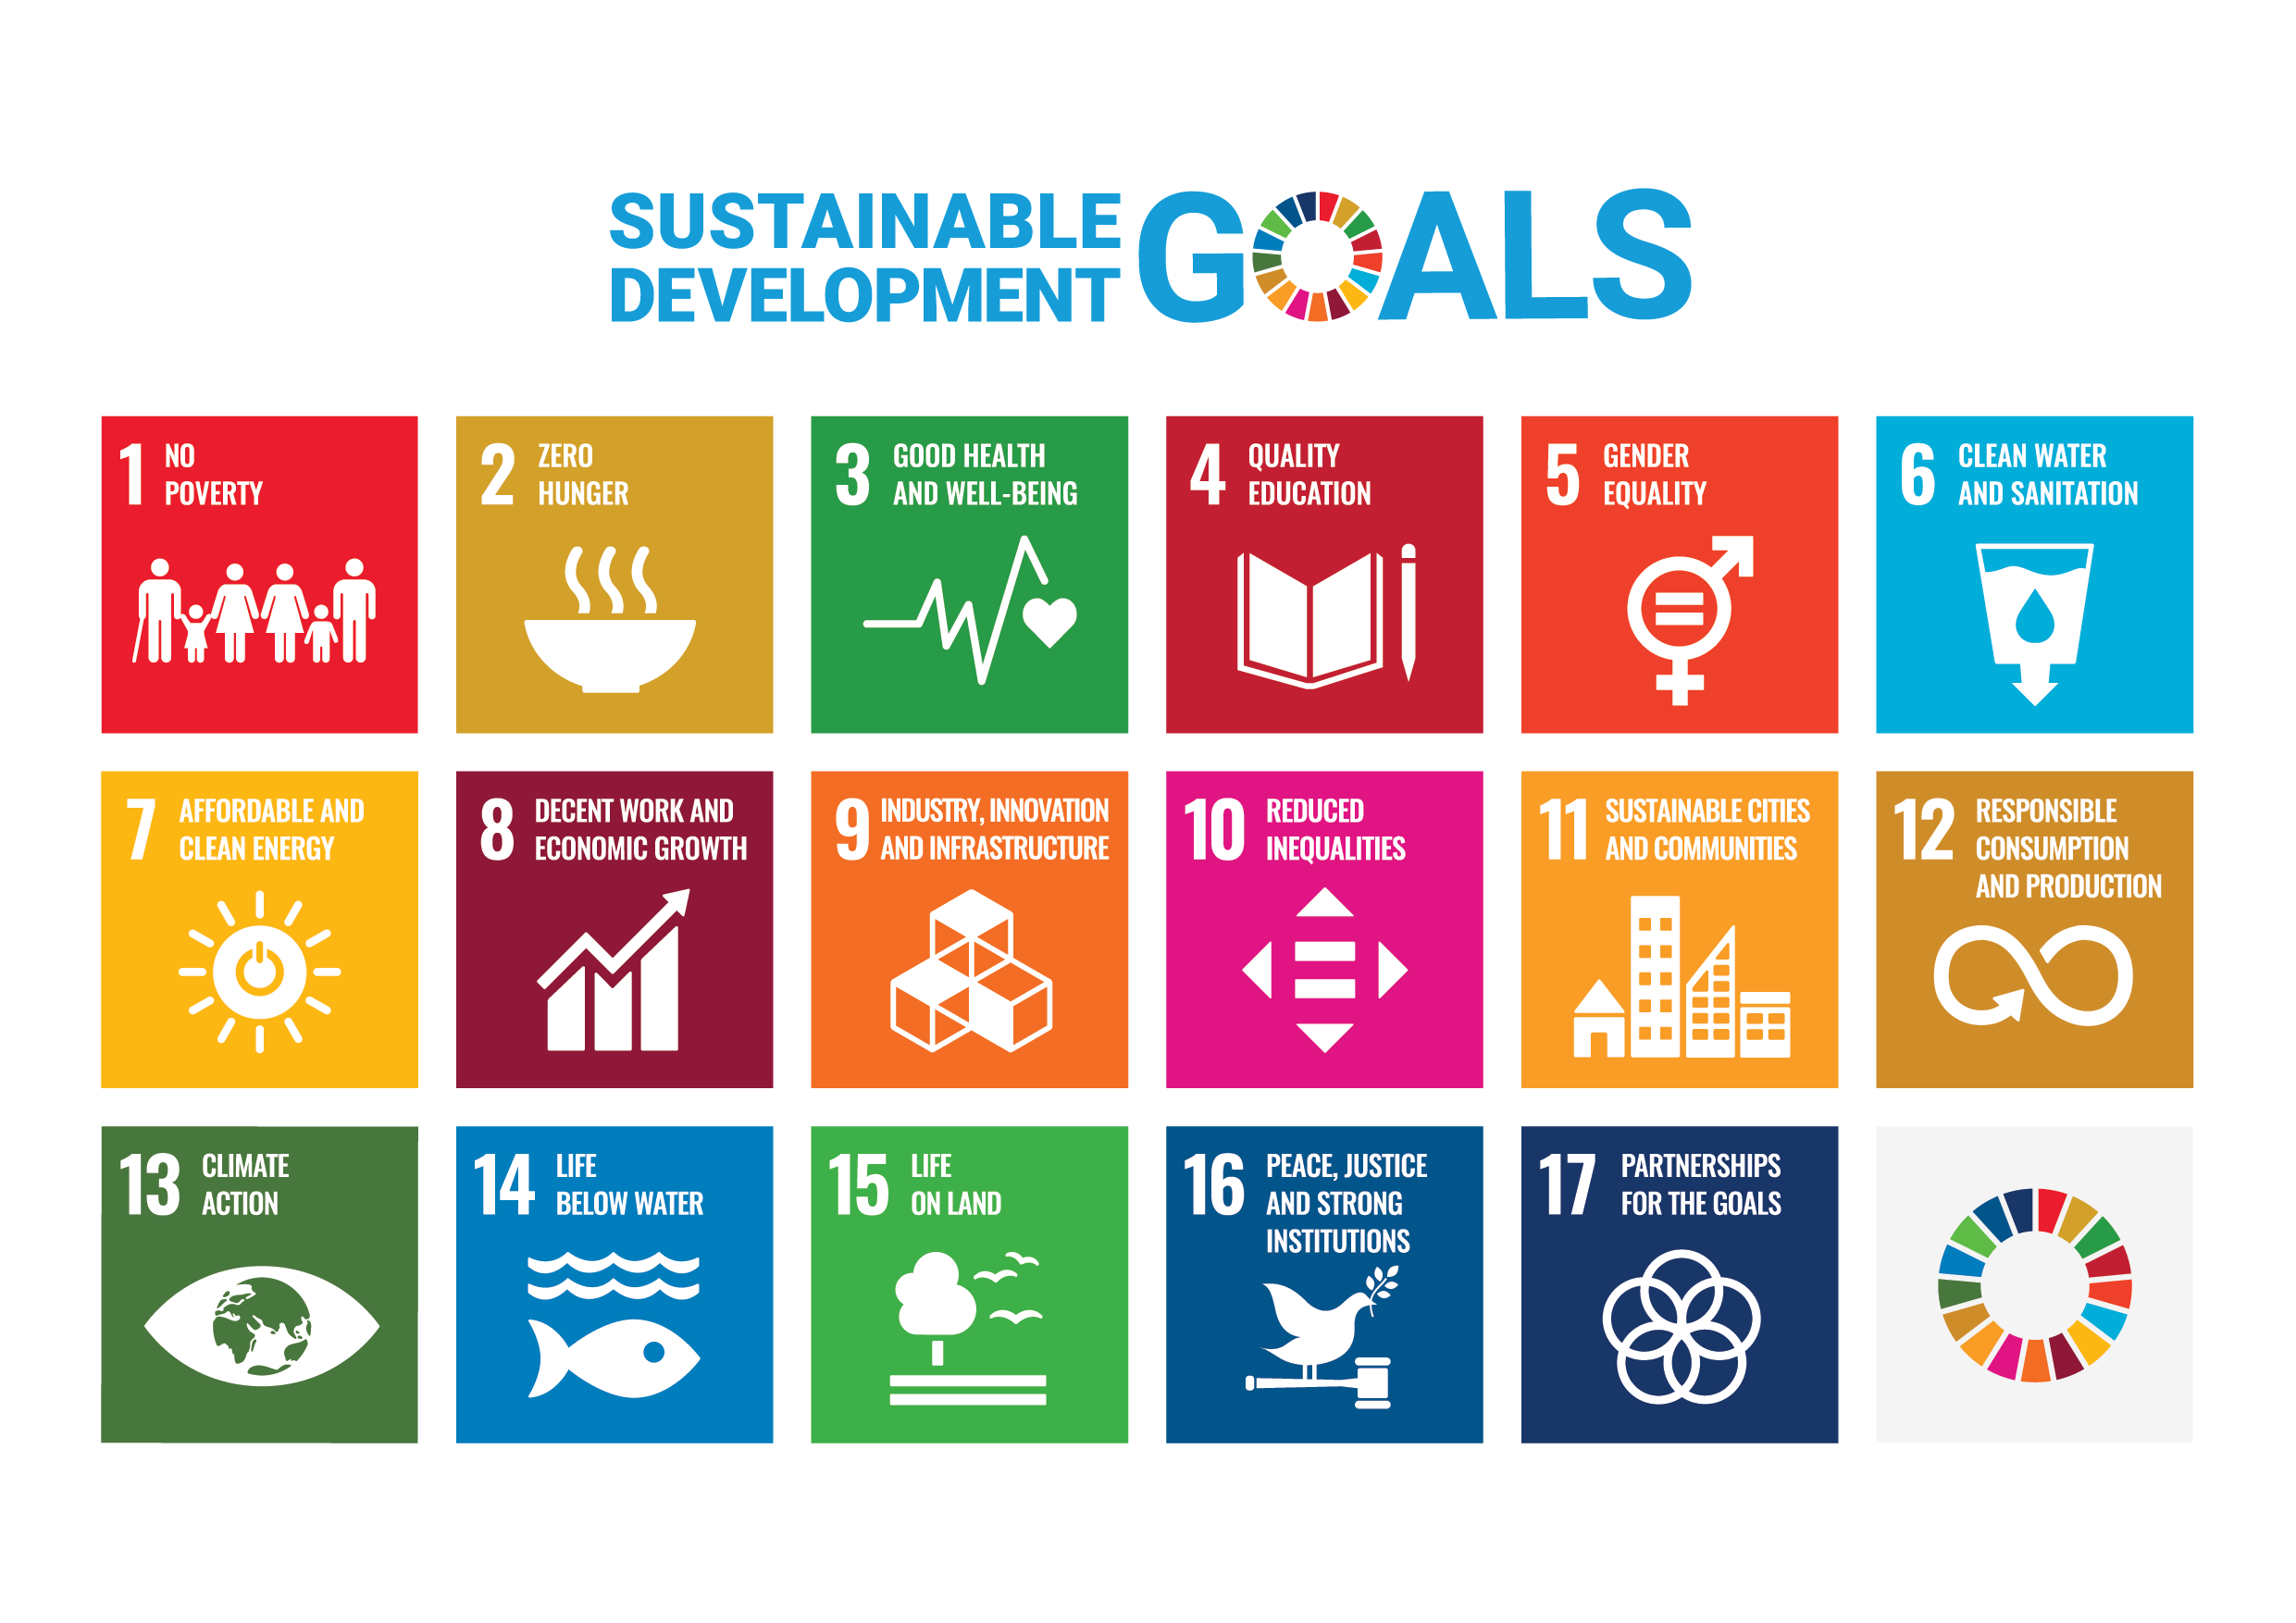 Sustainable Development Goals and ECONNECT Energy